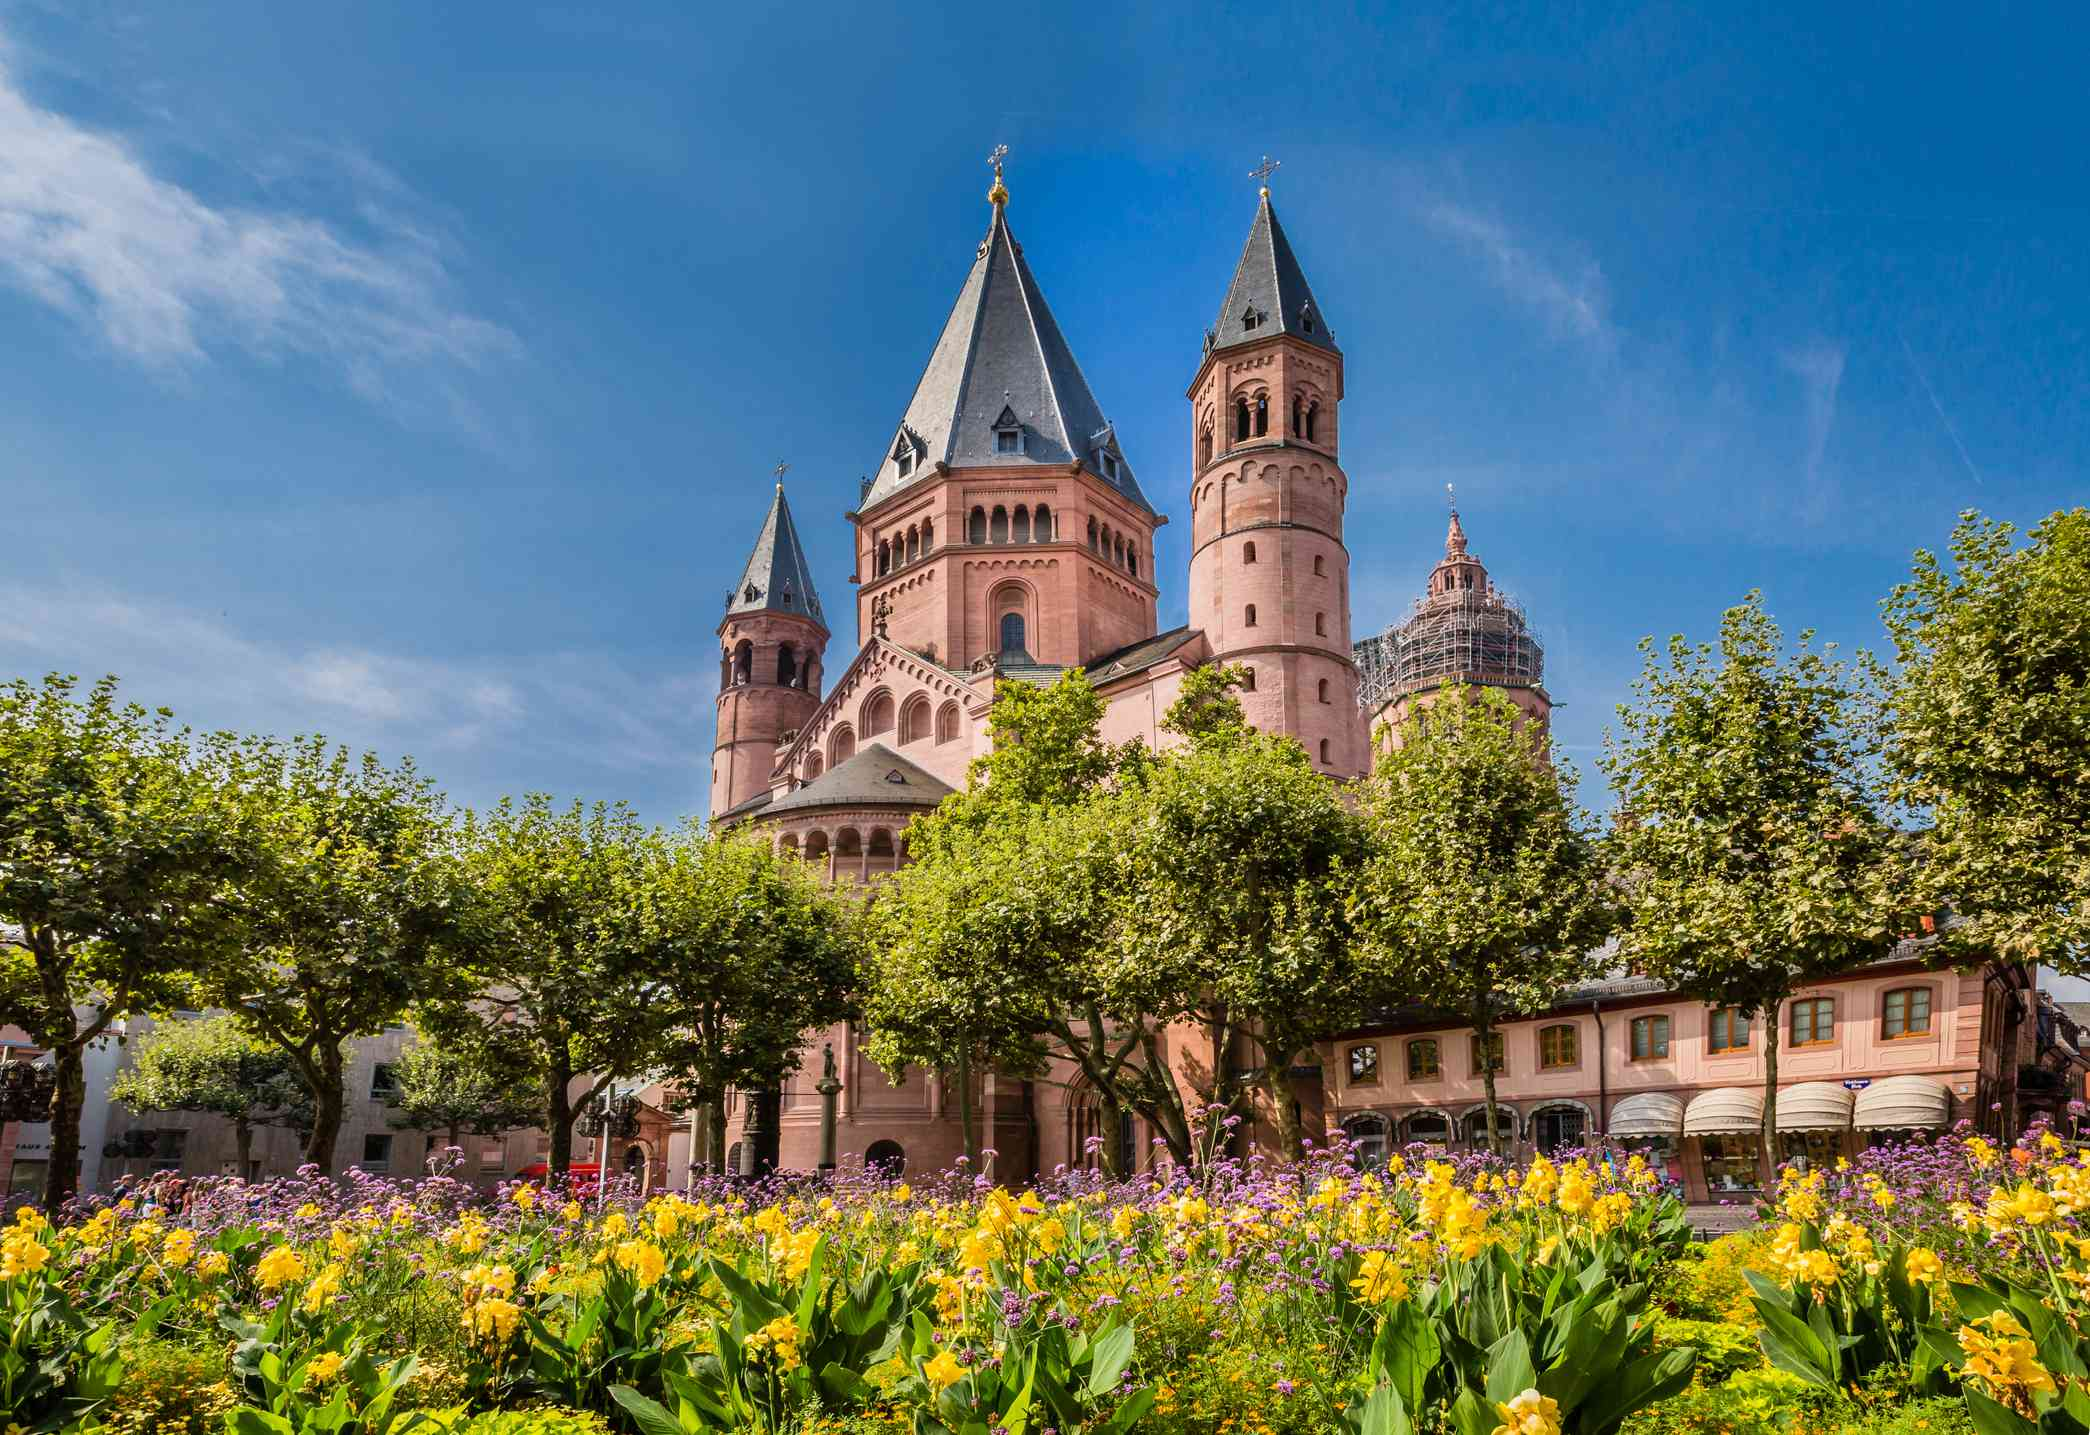 Ancient cathedral in Meinz, Germany